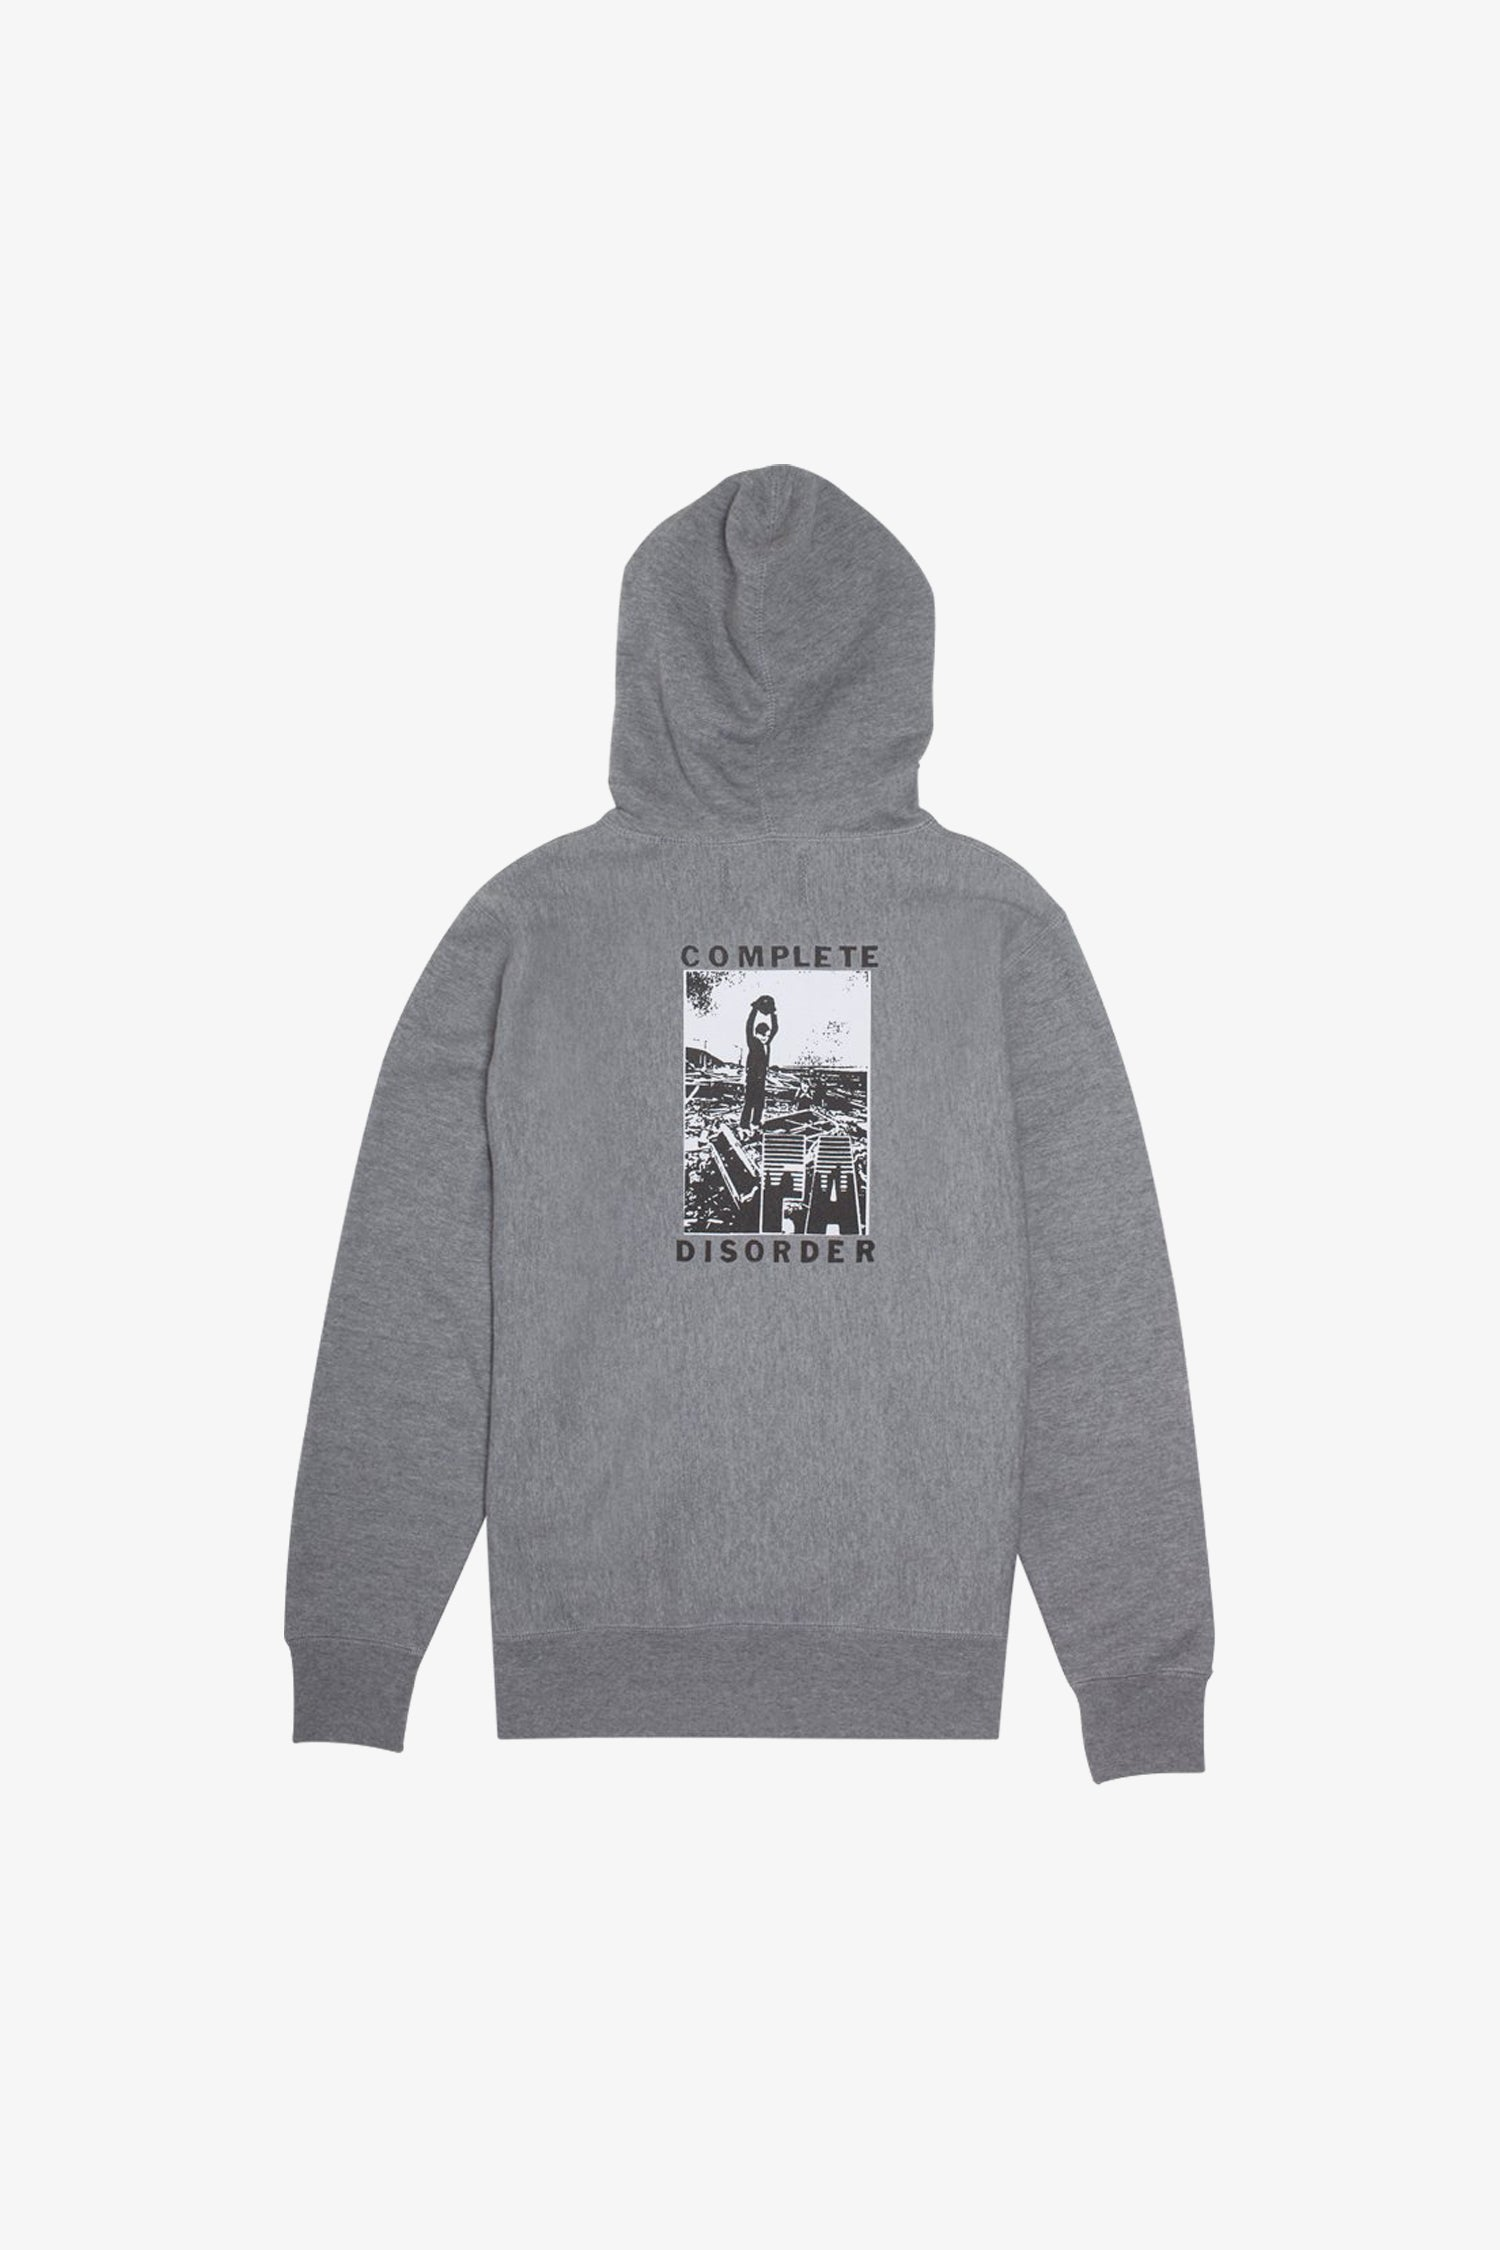 Selectshop FRAME - FUCKING AWESOME Disorder Hoodie Sweatshirt Dubai